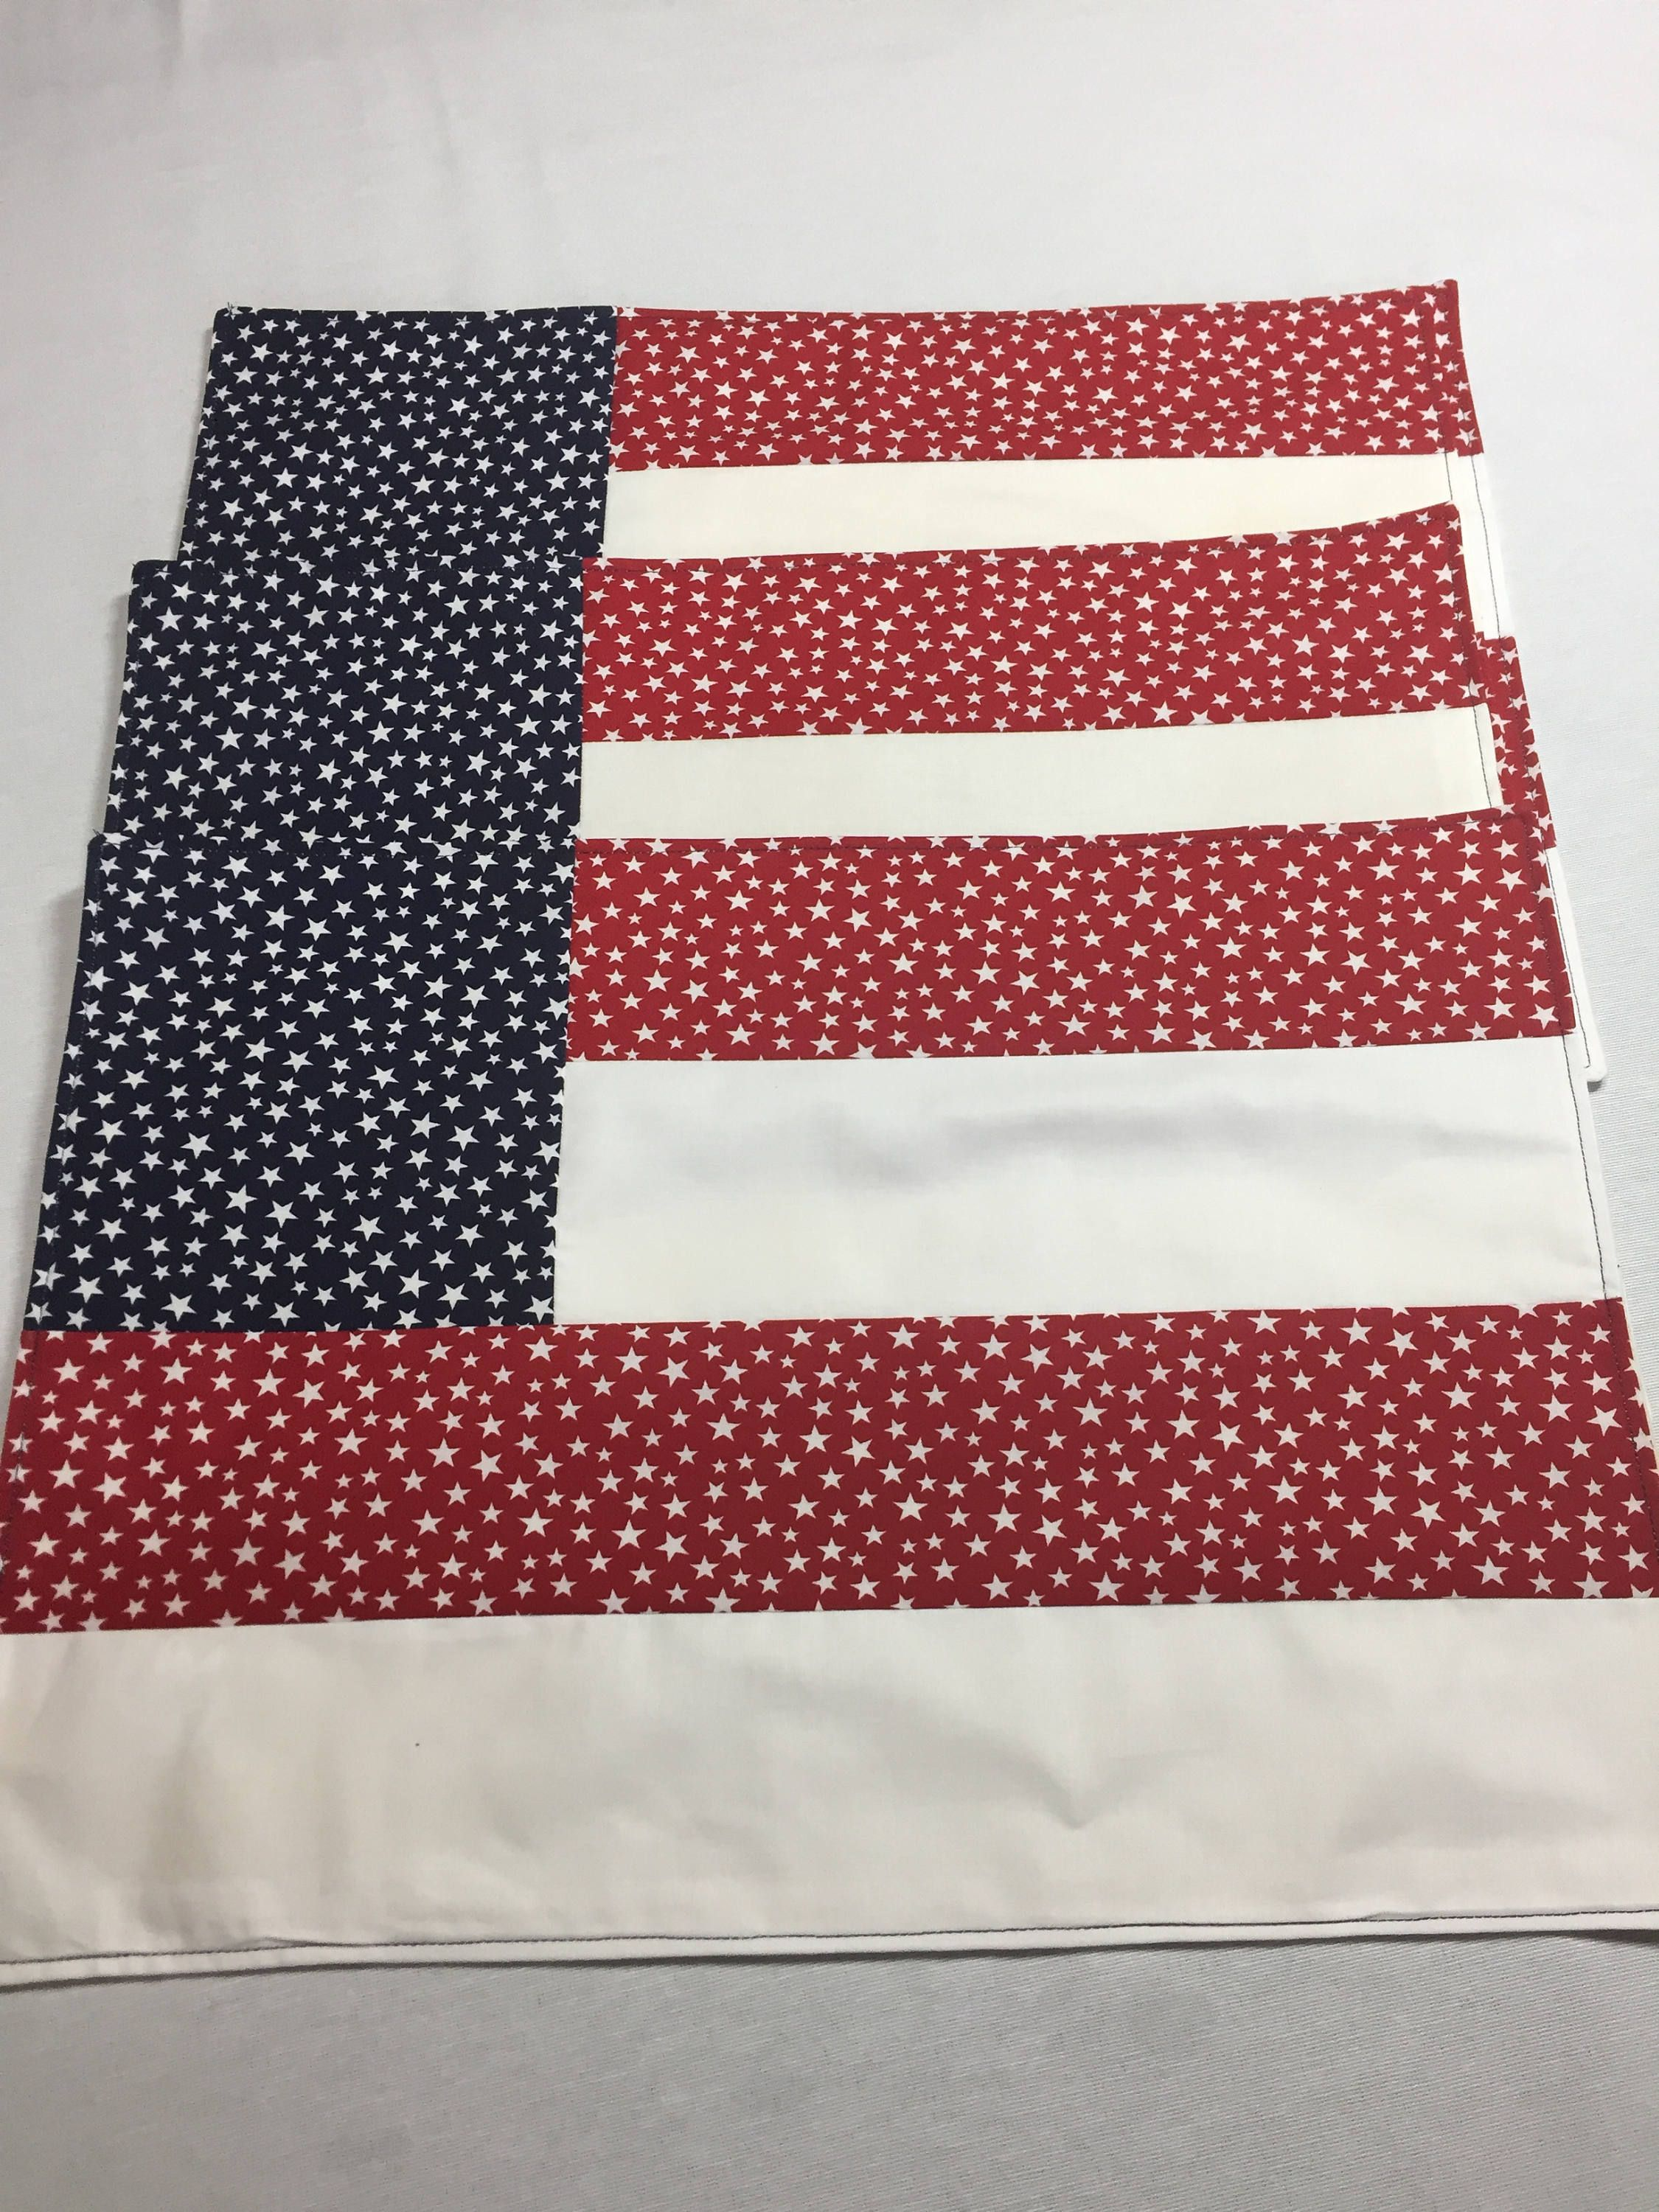 4th Of July Placemats Flag Placemats Patriotic Placemats Red White And Blue Independence Da Blue Placemats Patriotic Decorations Table Runner And Placemats